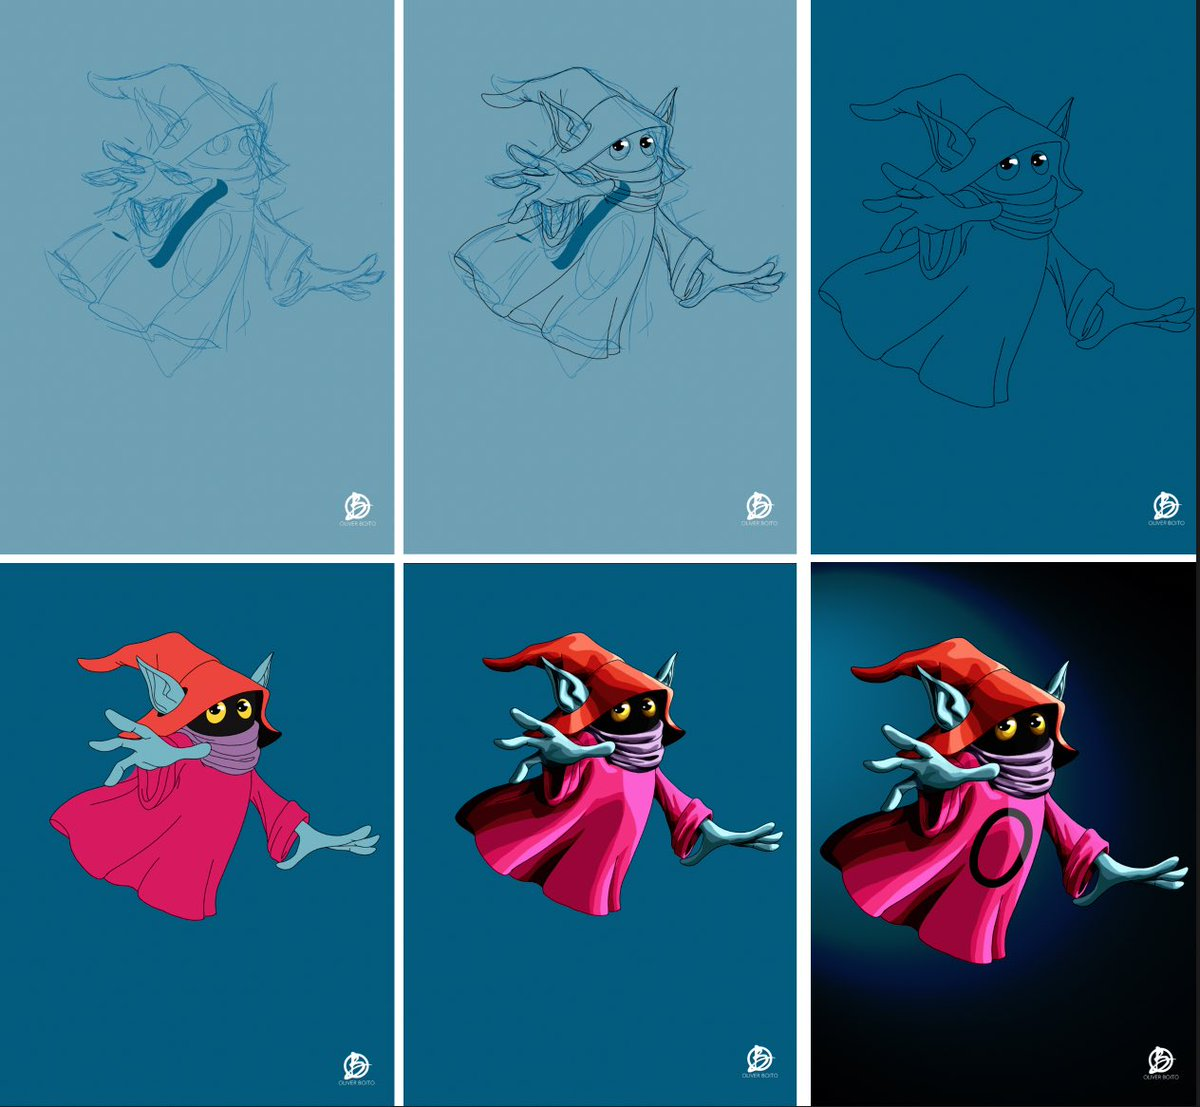 Stages snapshots of my Orko Illustration. #MastersoftheUniverse #motudrawingchallenge #heman @MastersOfficial #orko